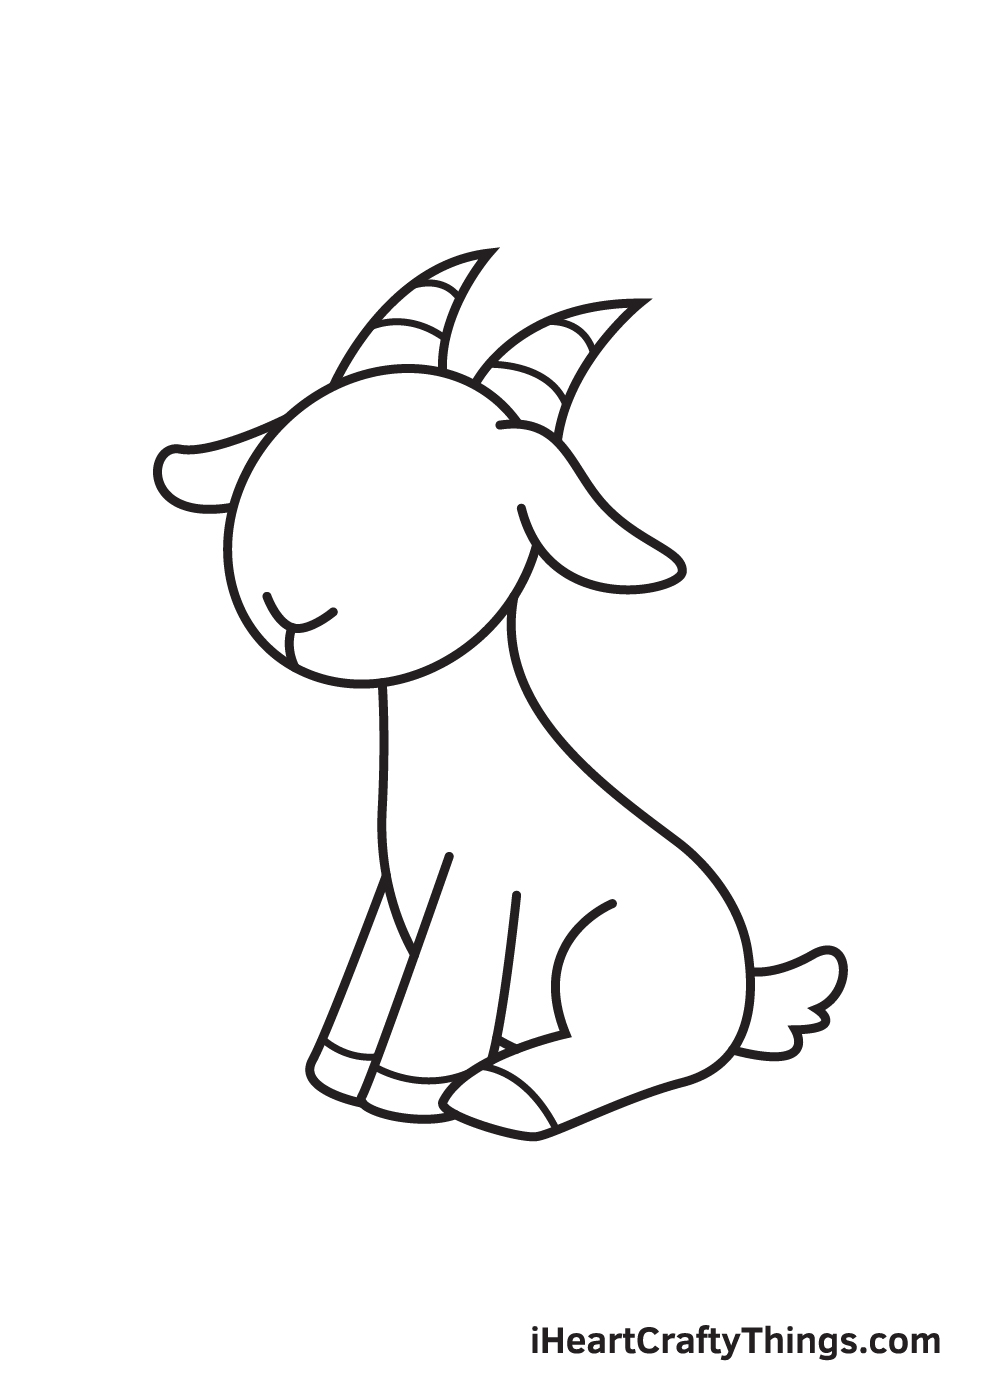 goat drawing - step 8